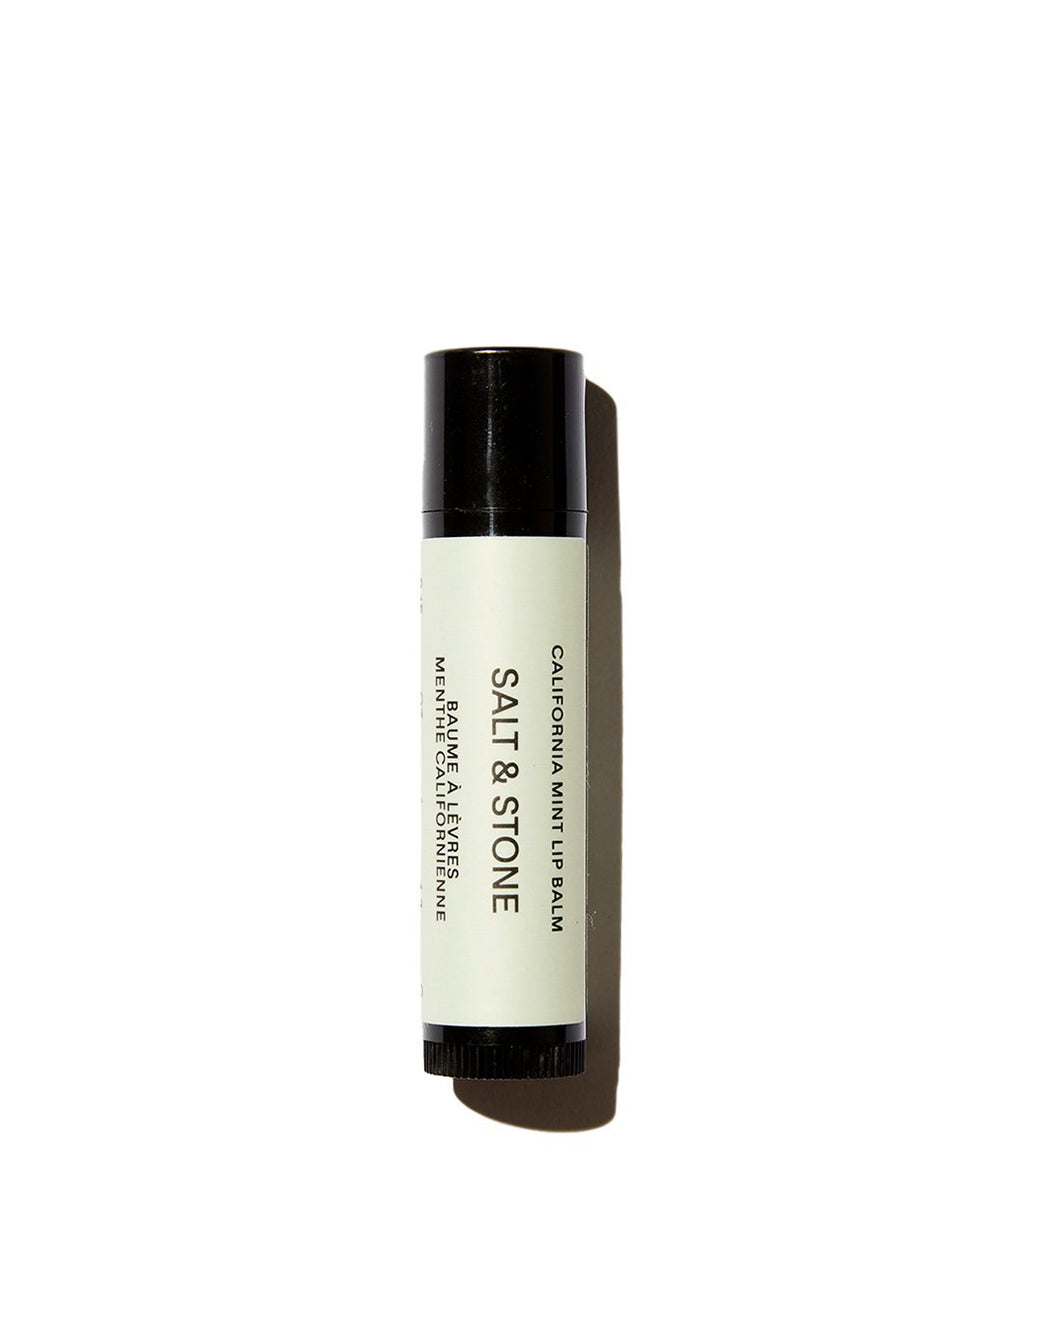 SALT & STONE - ORGANIC LIP BALM - California Mint